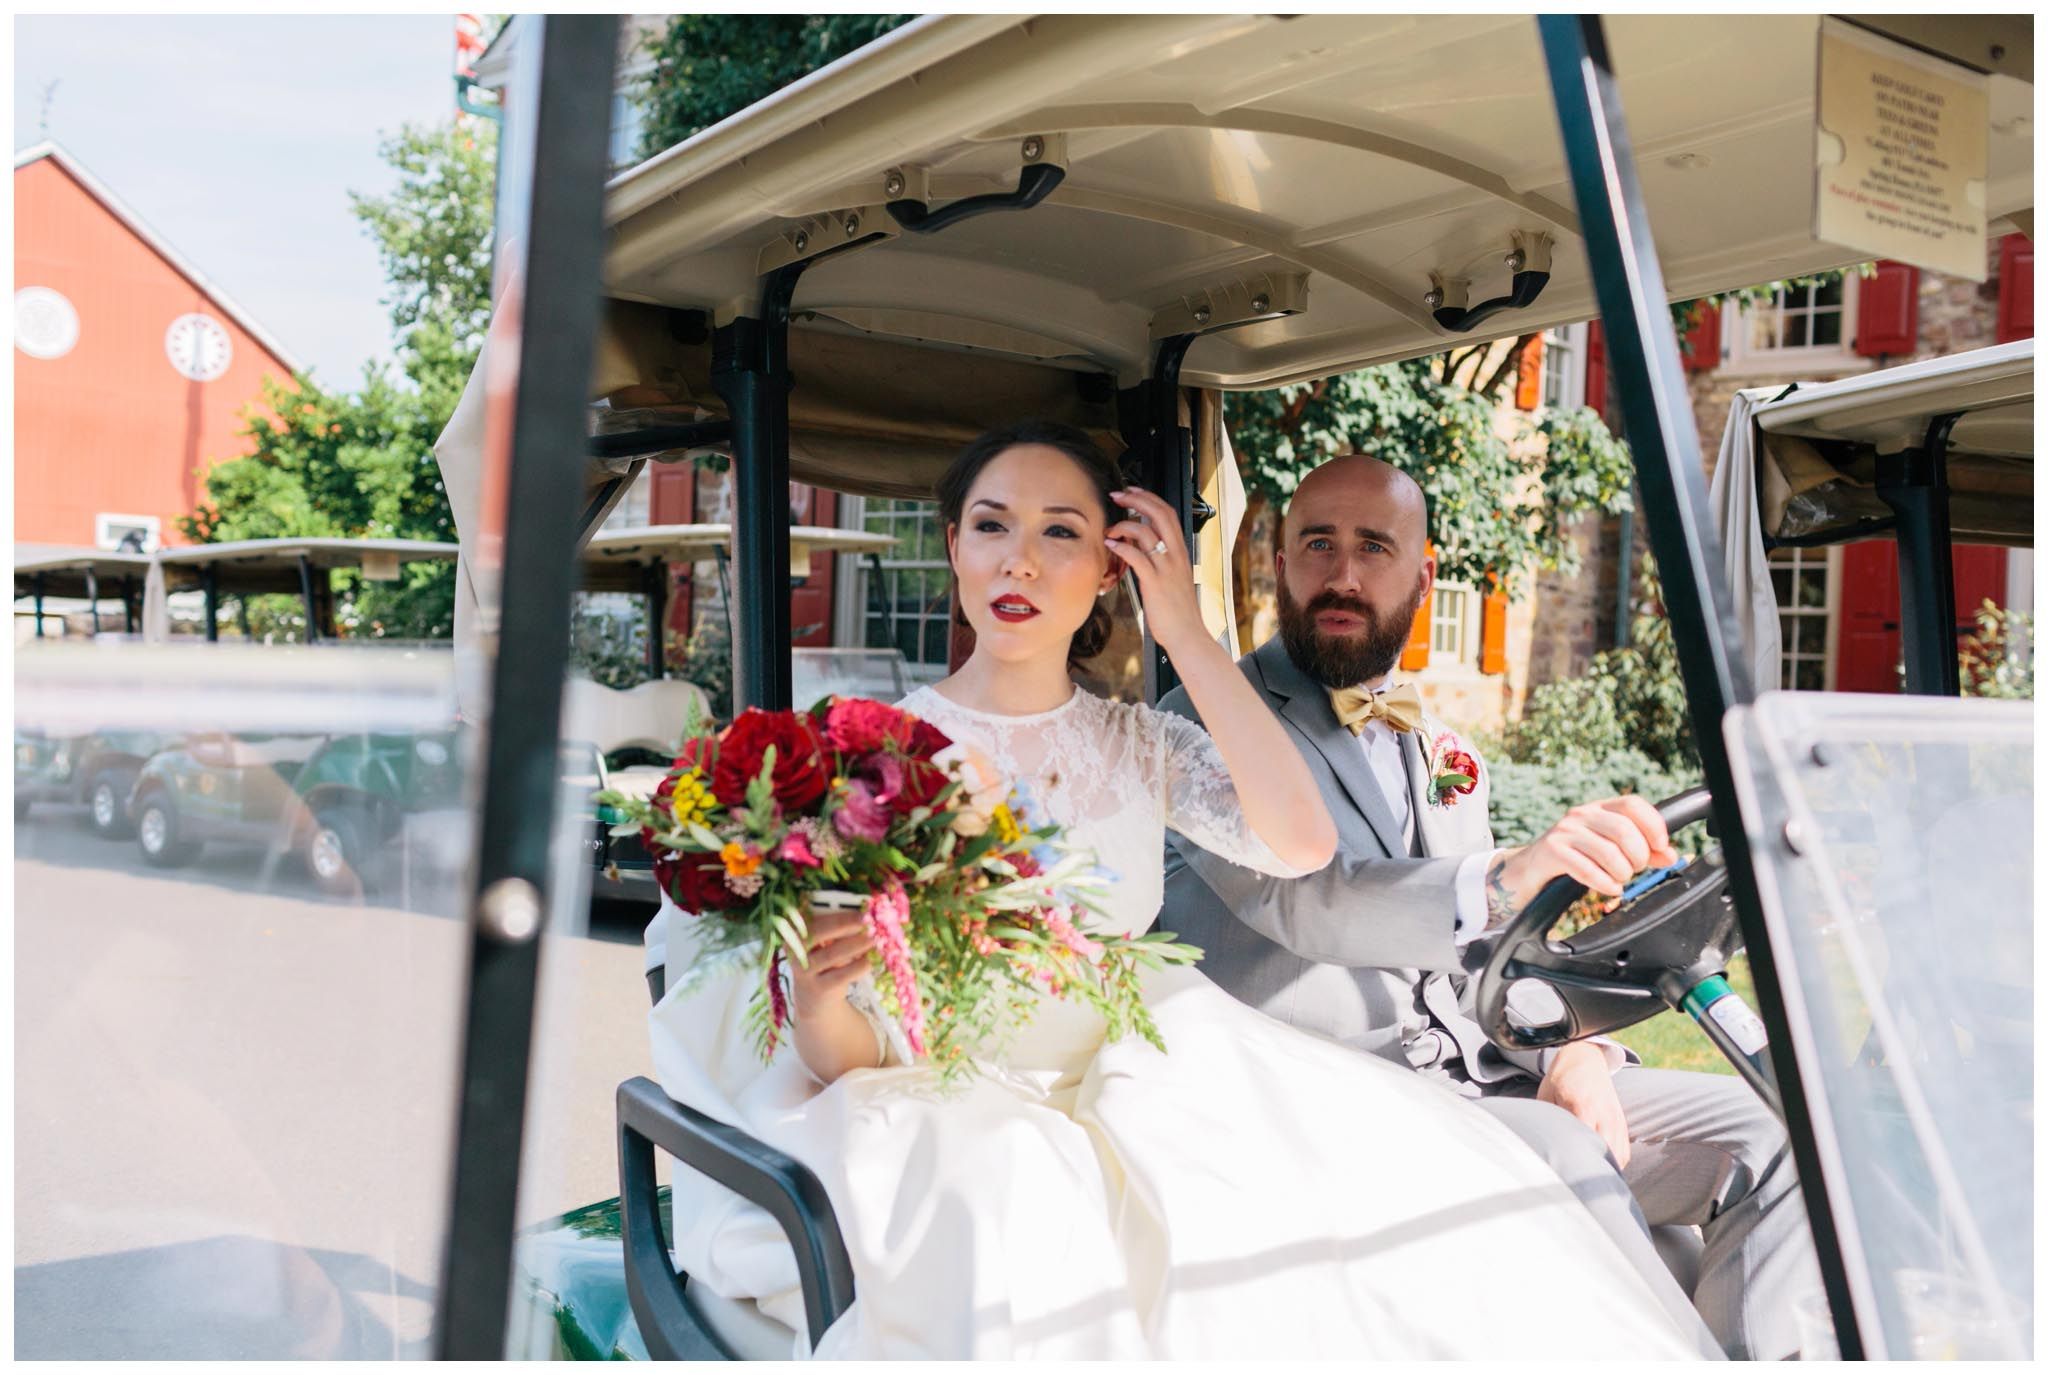 golf cart, portraits, Philadelphia, wedding